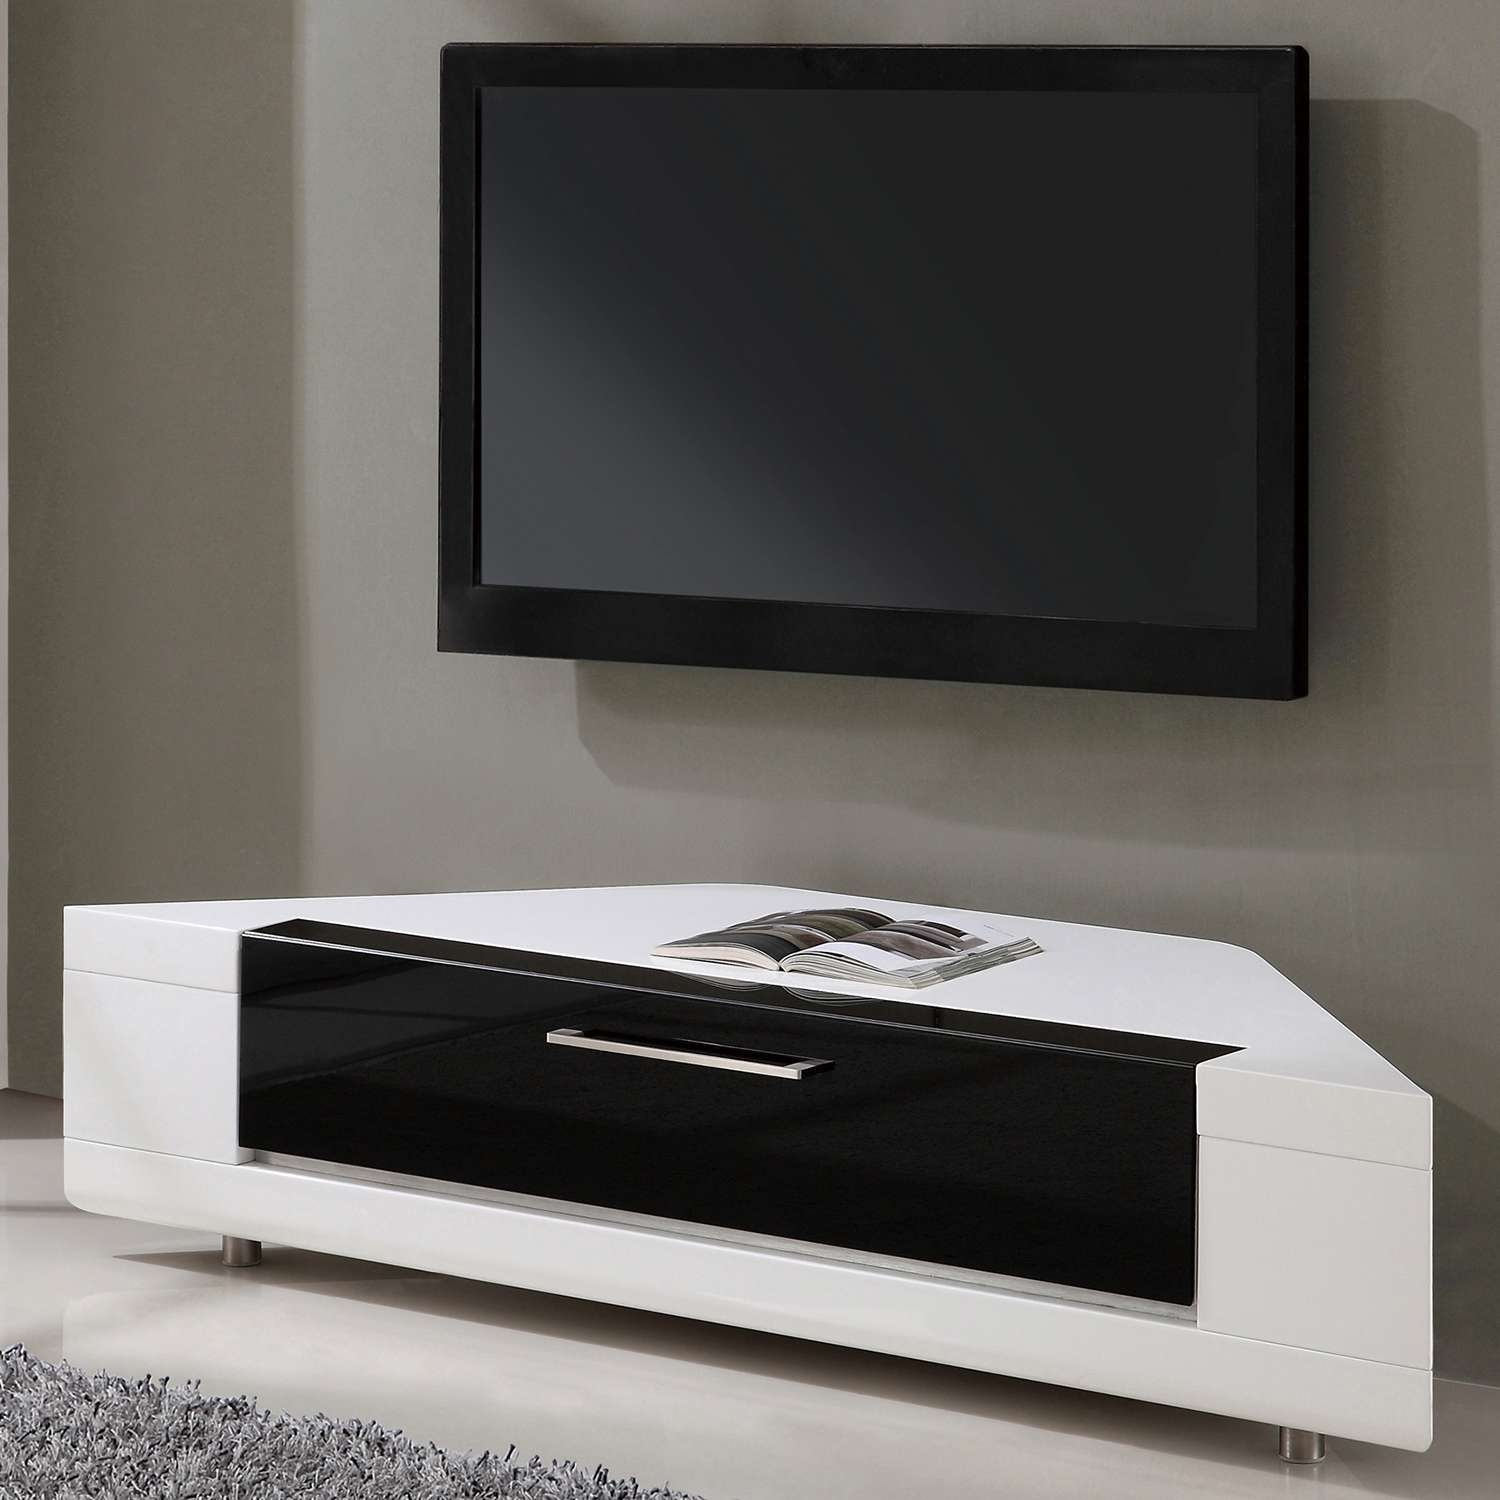 "B Modern Bm 634 Wht Editor Remix 60"" Corner Tv Stand In White High Pertaining To High Gloss Tv Cabinets (View 18 of 20)"